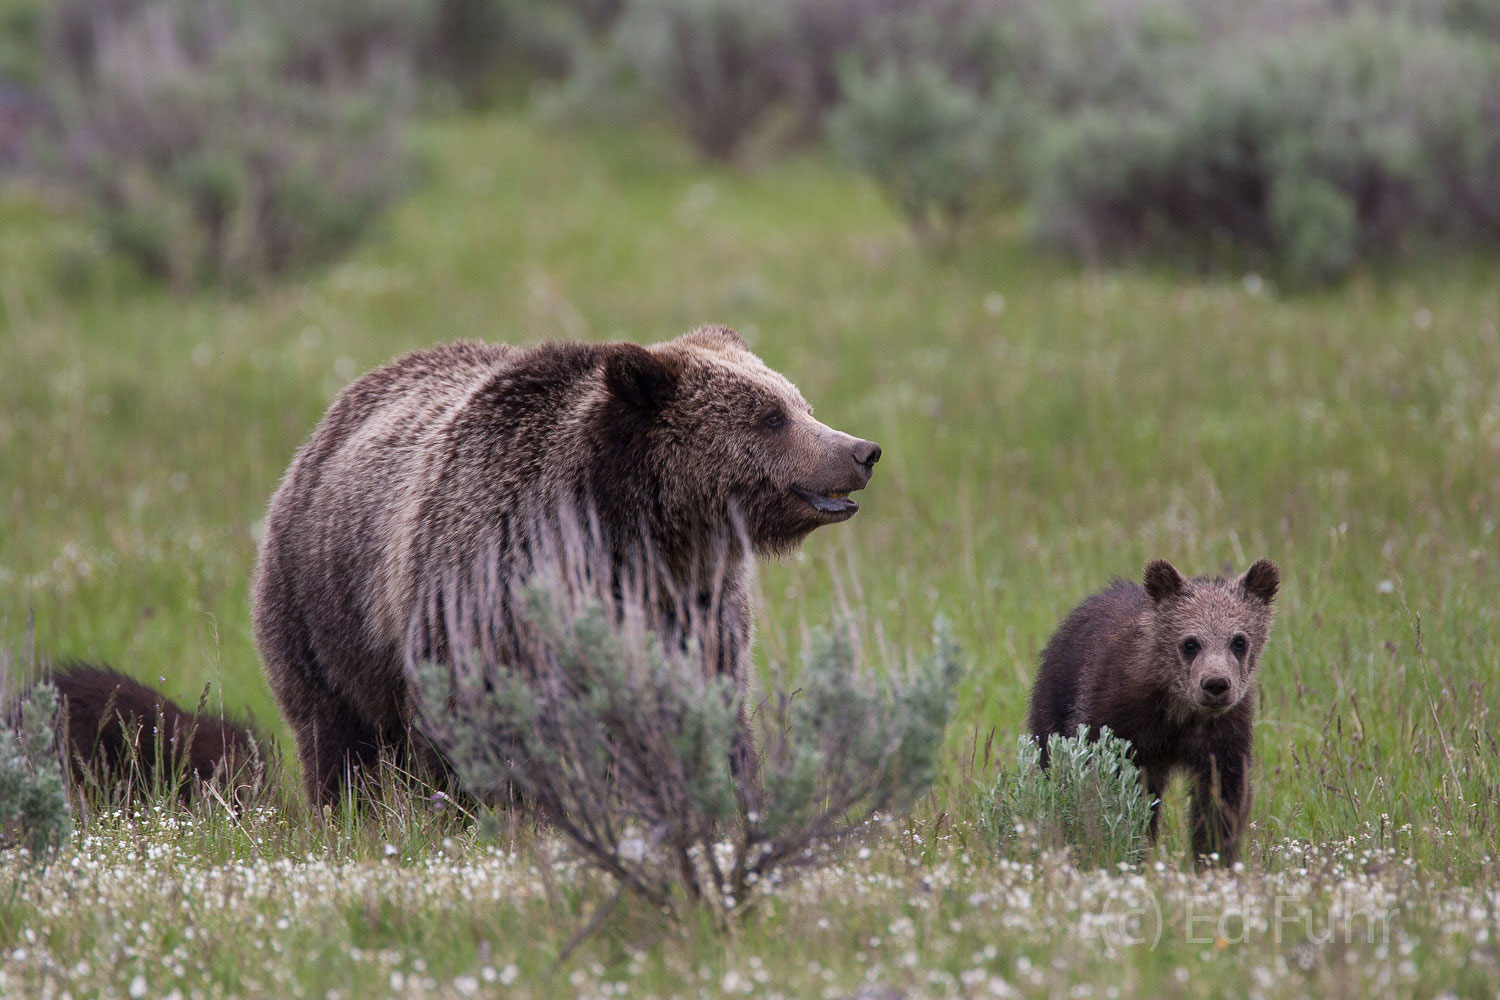 A grizzly family searches relentlessly for food.